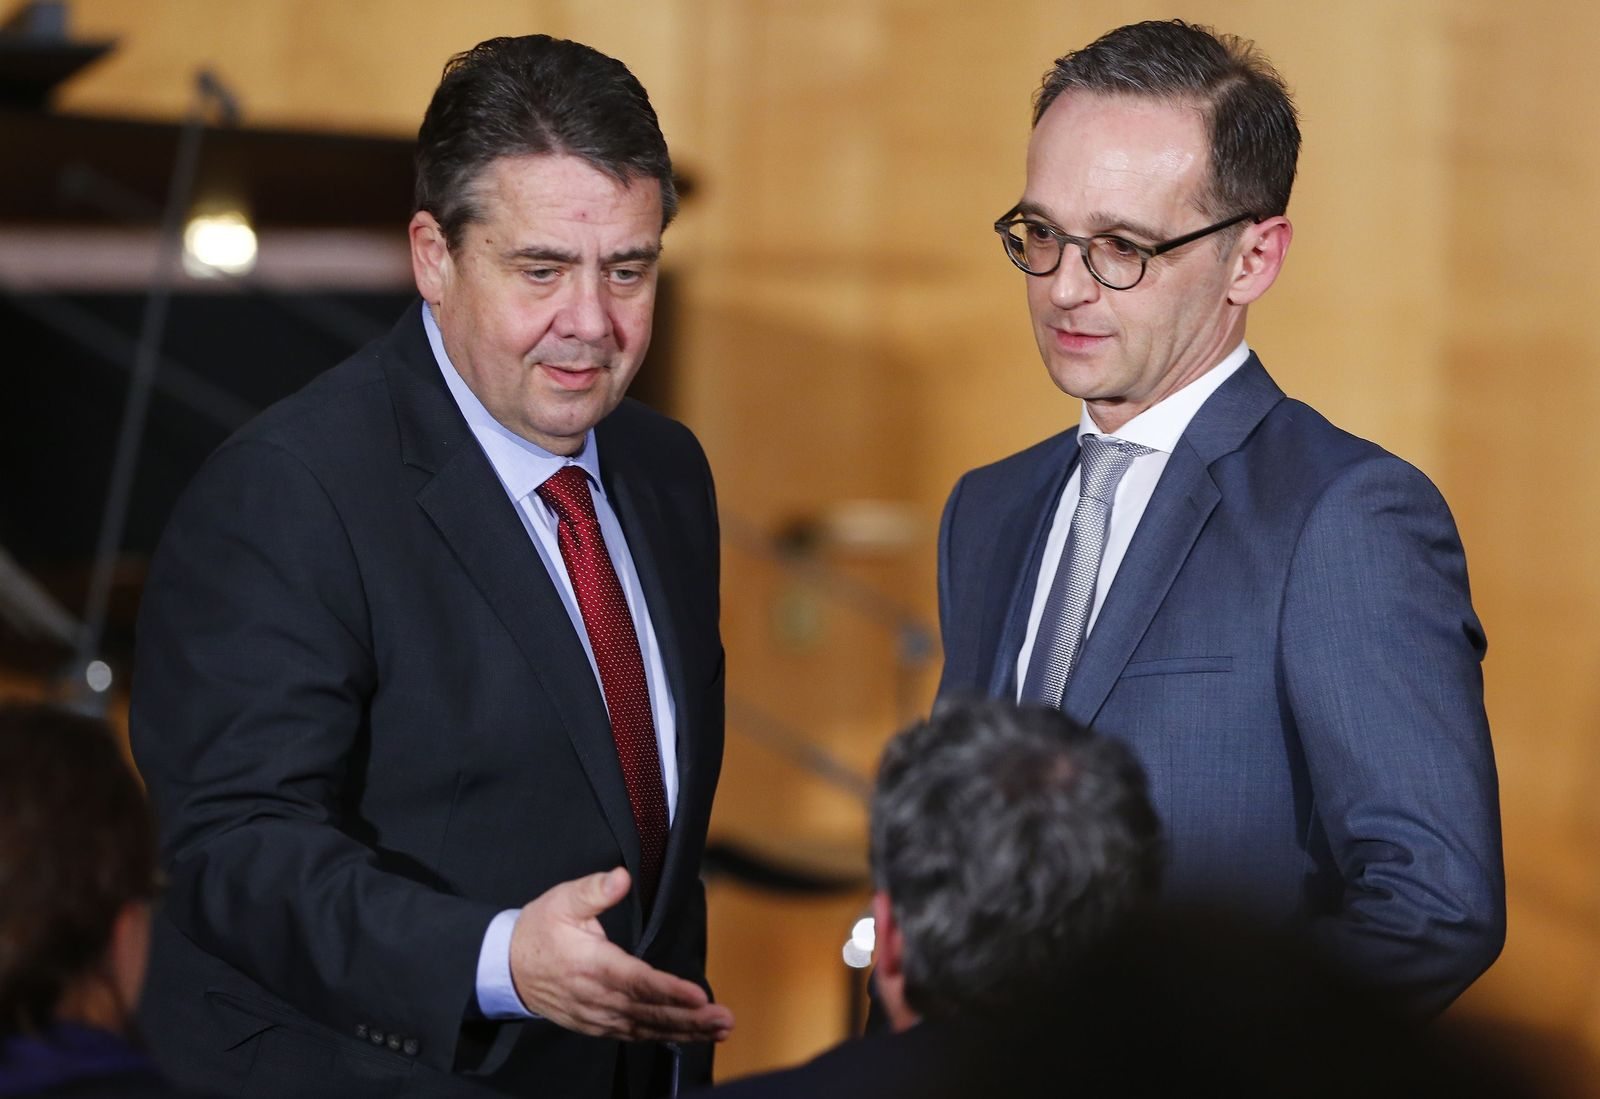 GERMANY-POLITICS/FOREIGN MINISTER